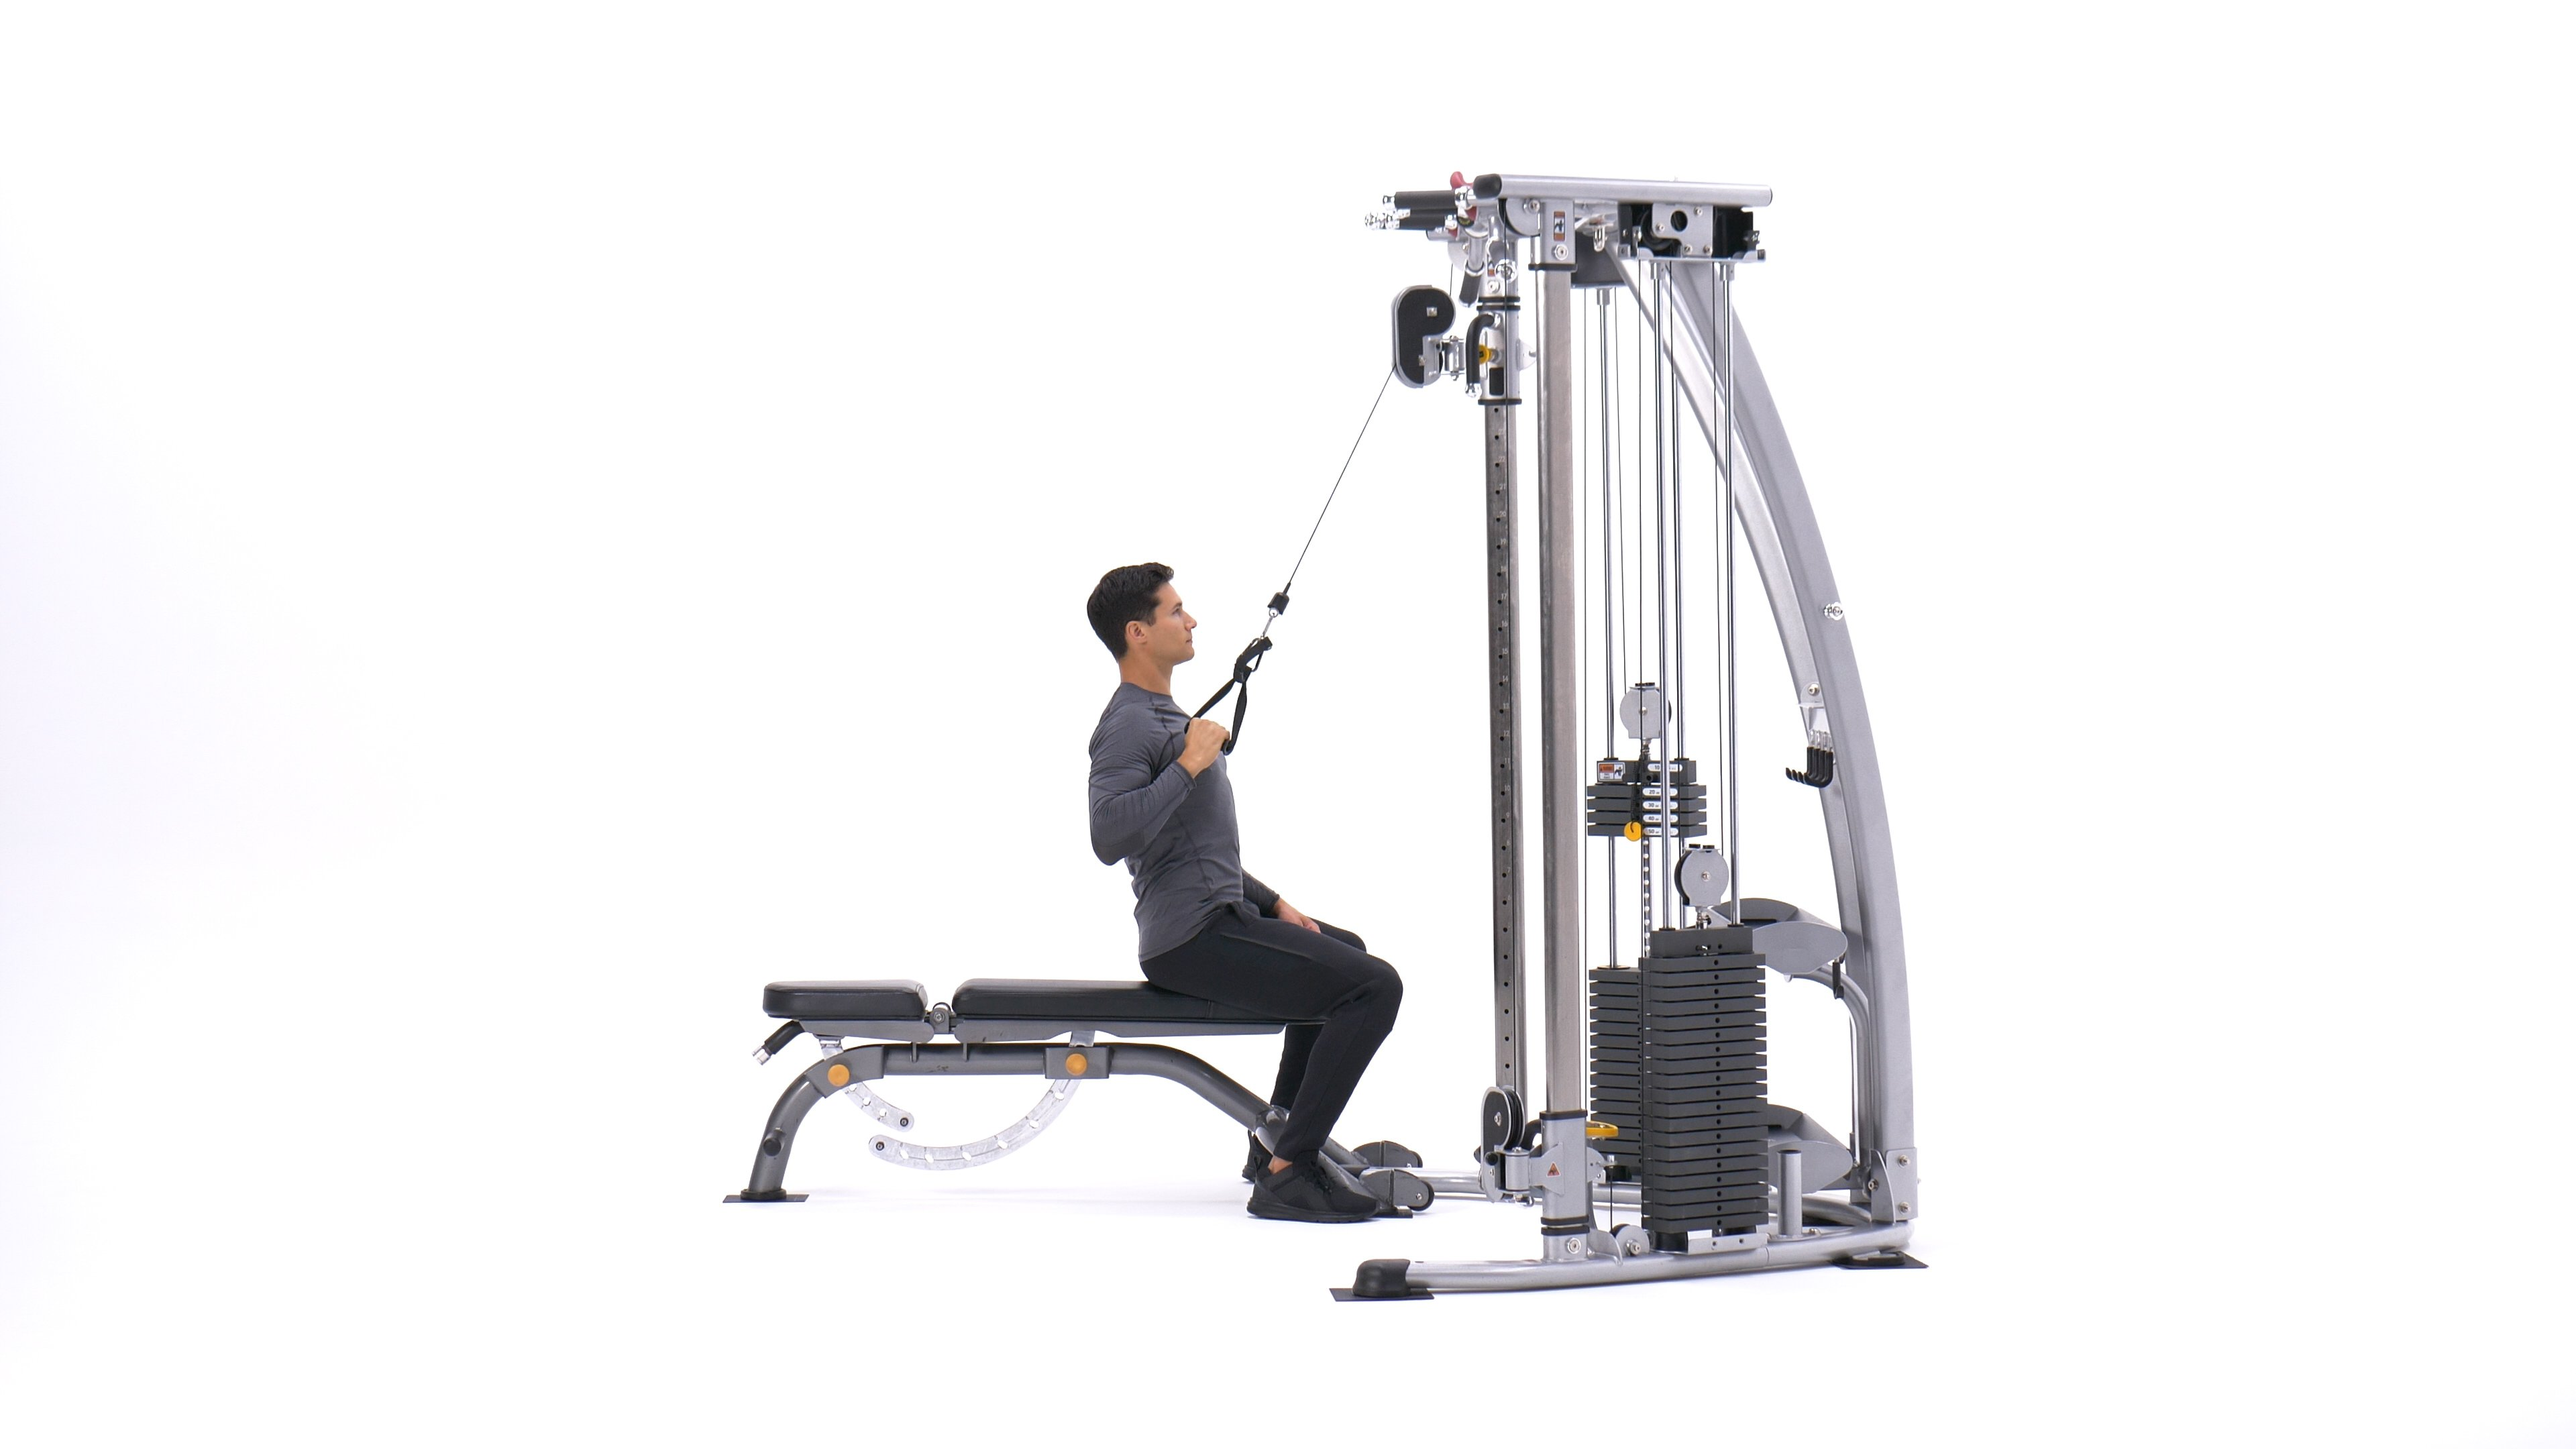 Single-arm pull-down image